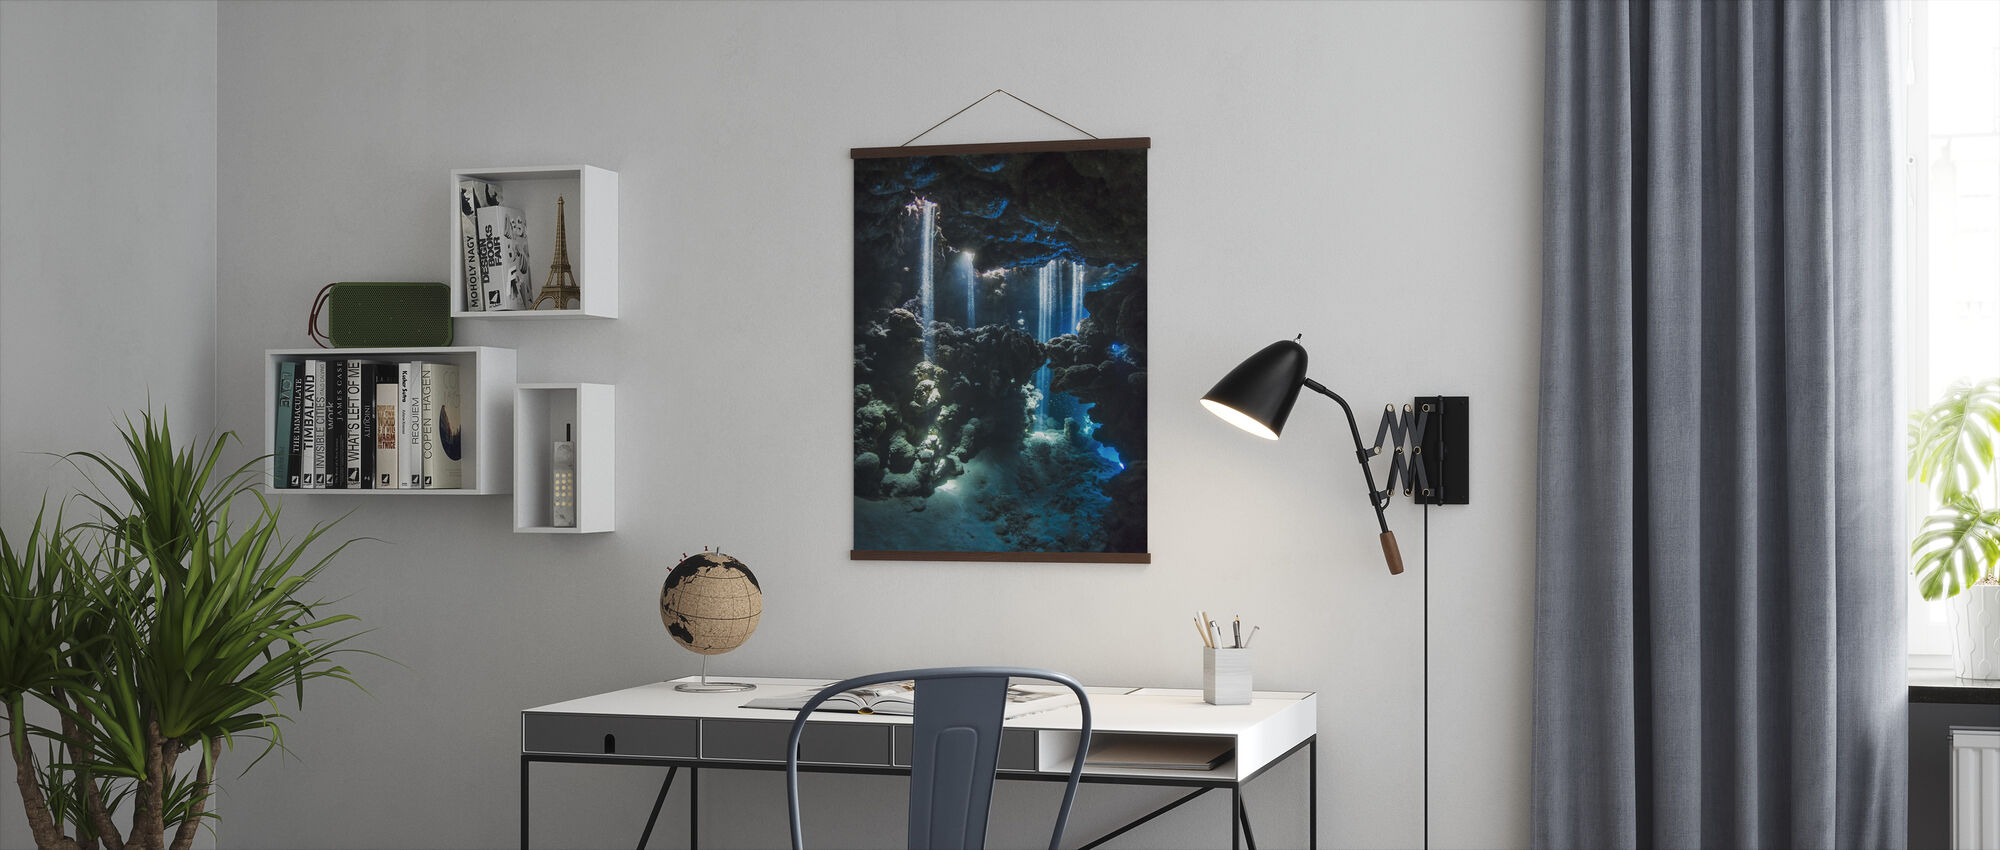 Shafts of Light - Poster - Office